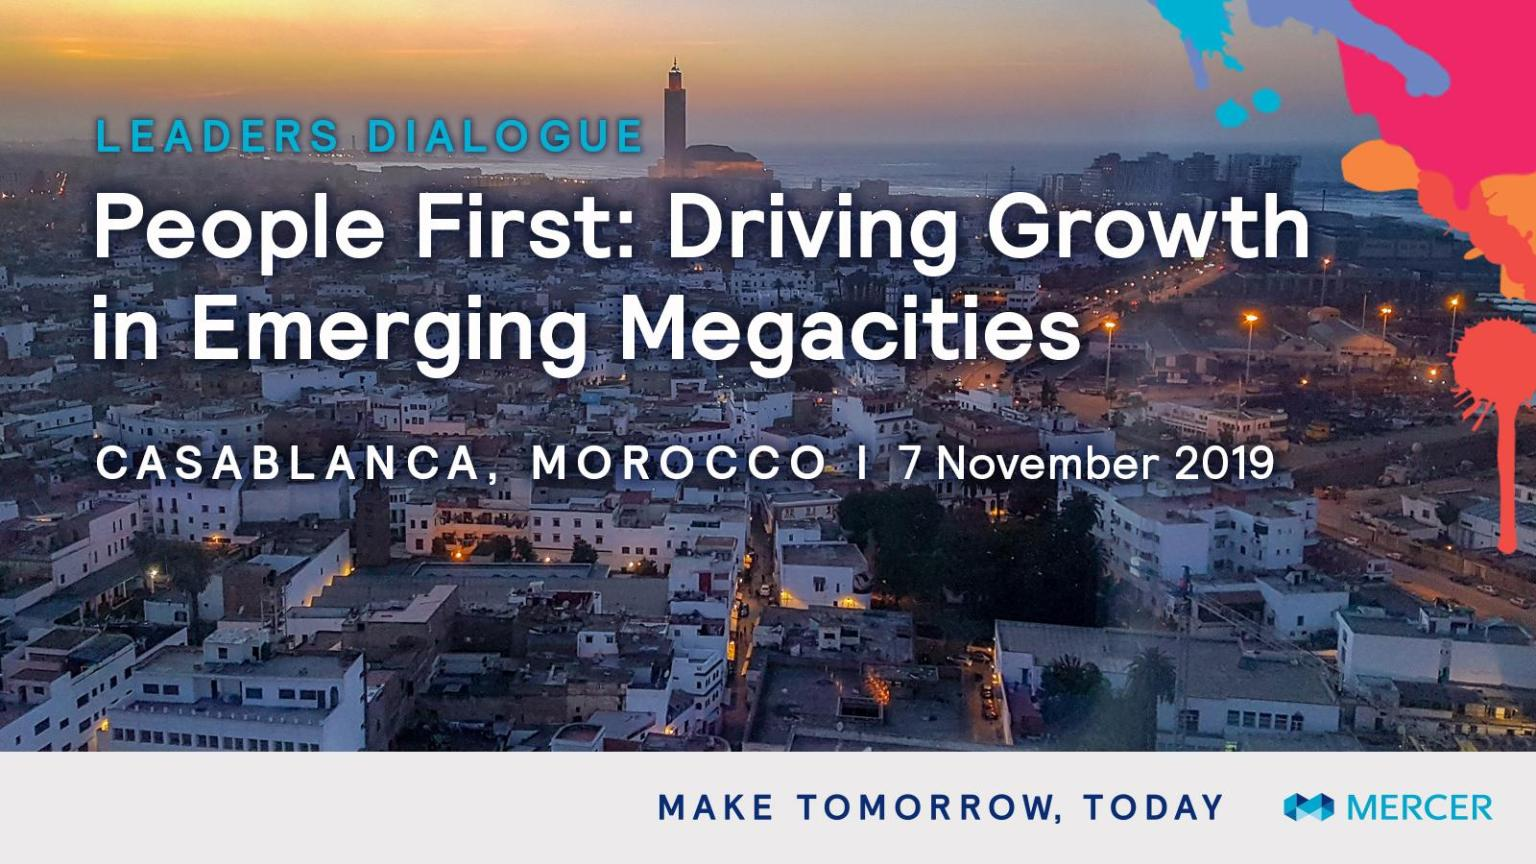 Leaders Dialogue Event by Mercer